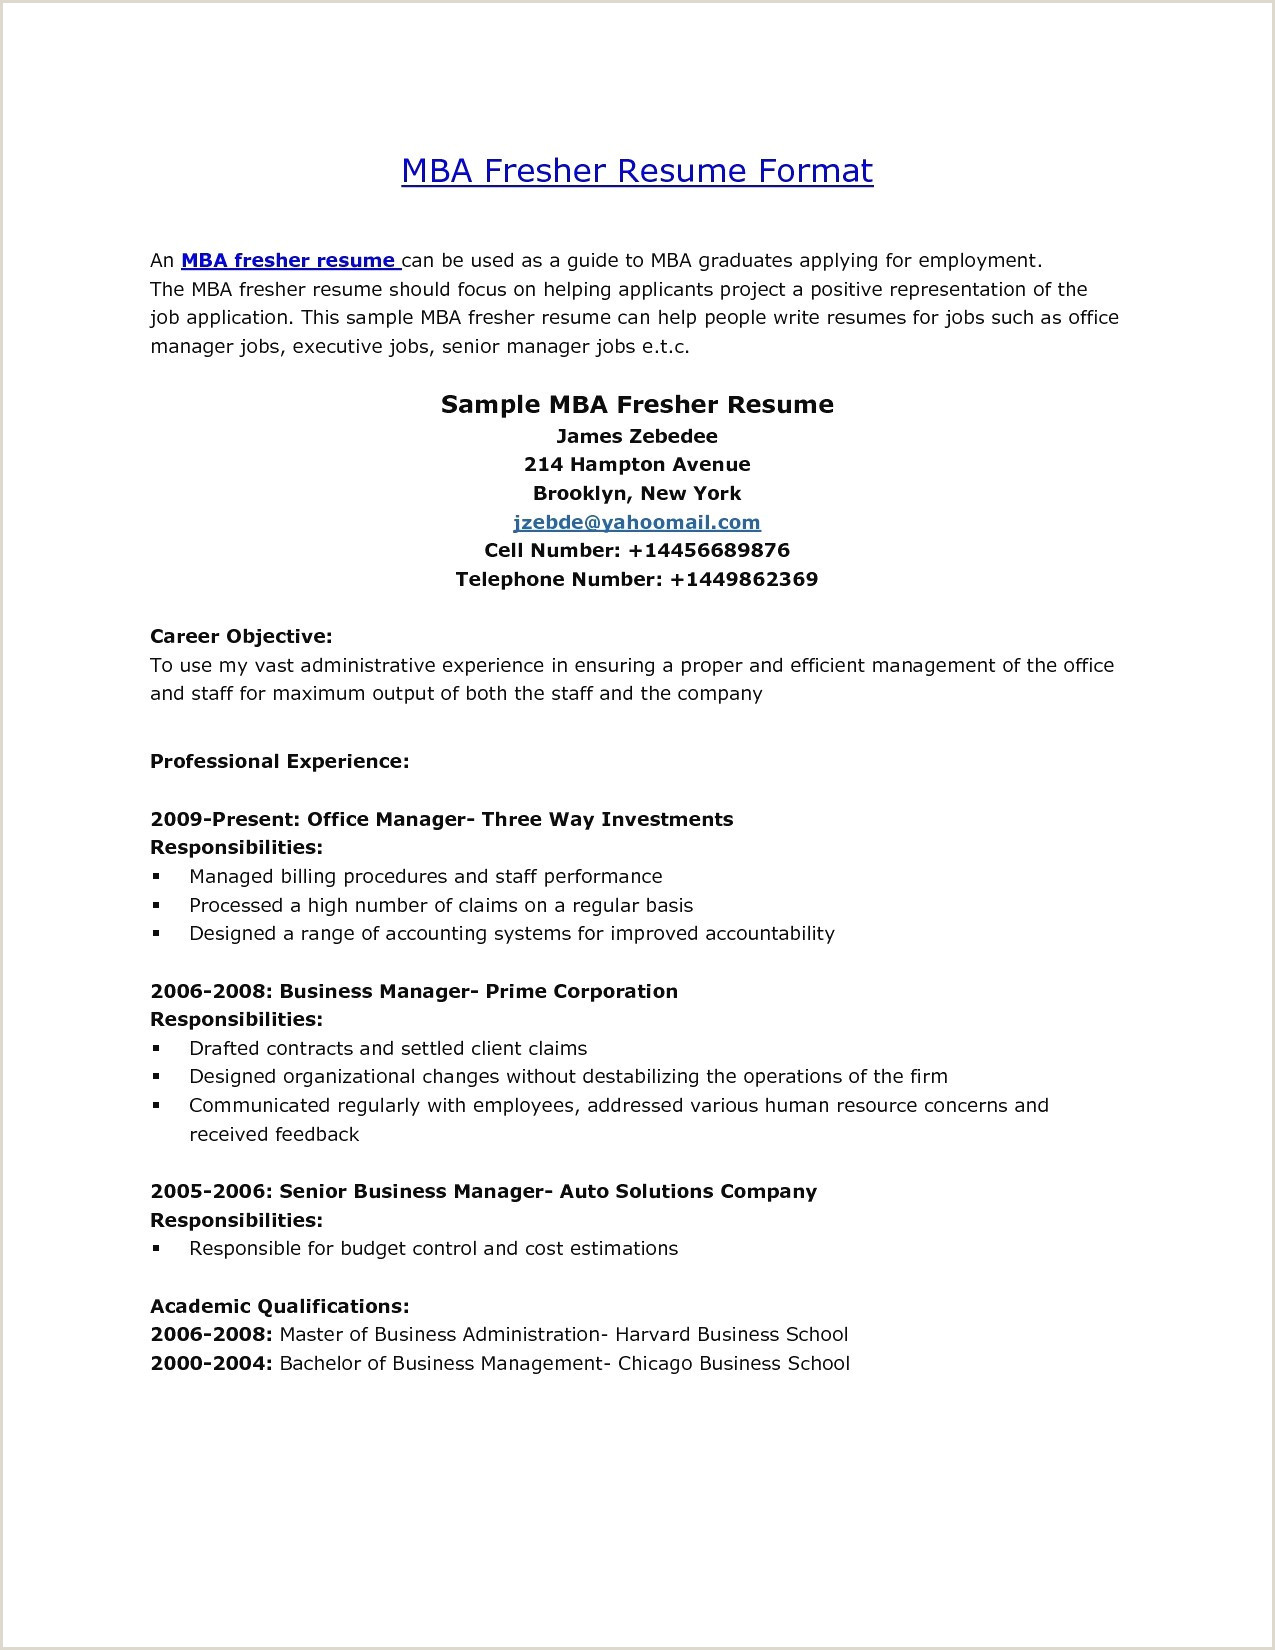 Fresher Resume format for Structural Engineer Technical Resume format for Experienced Professional B Pharm